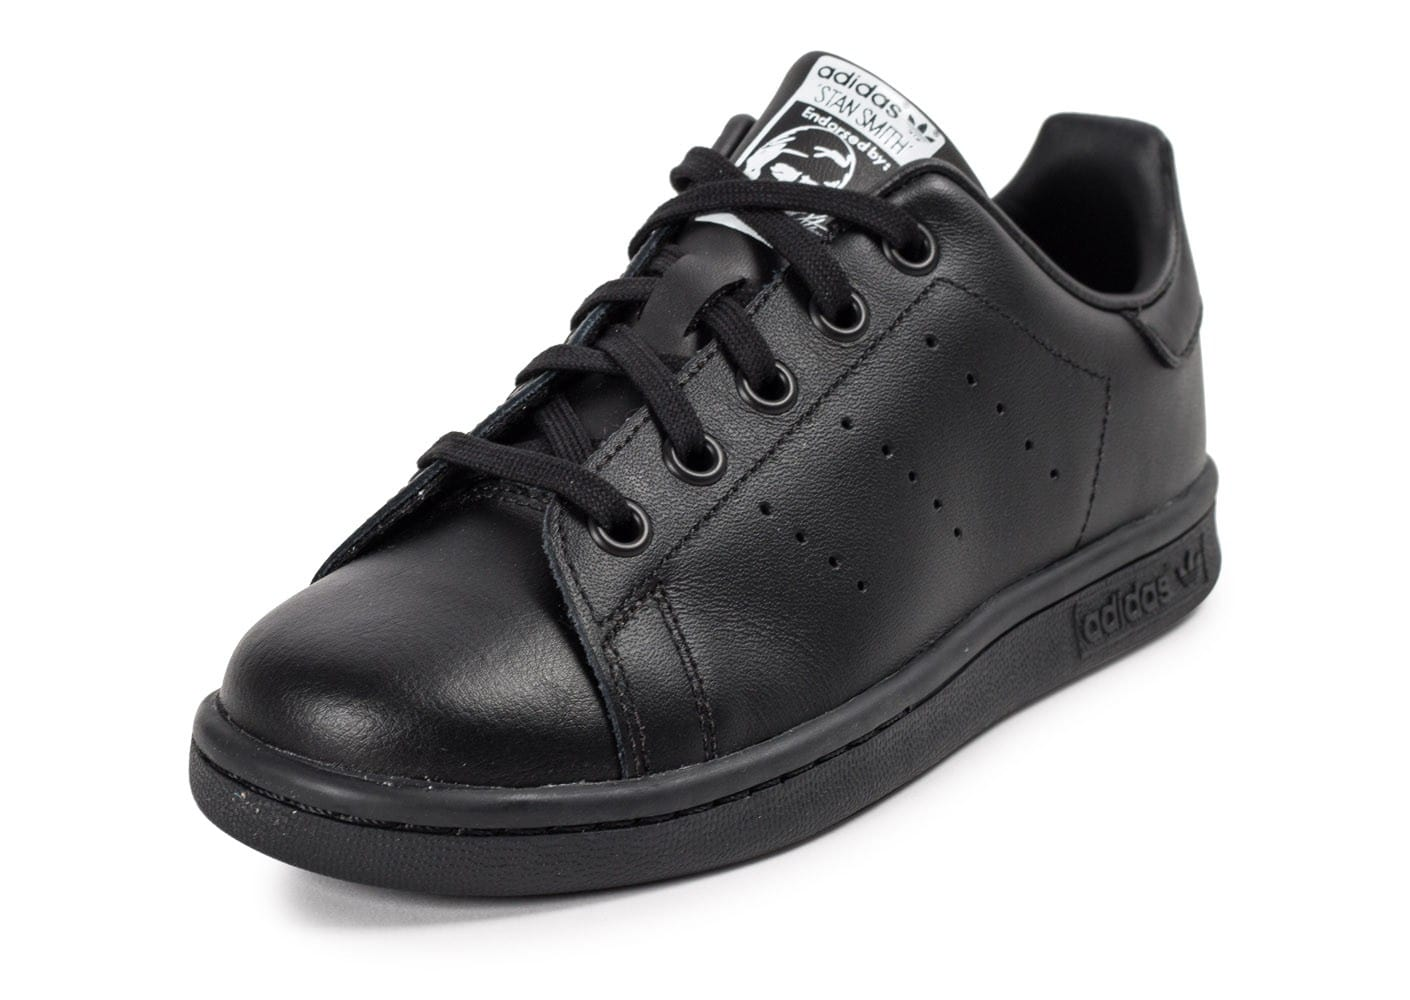 adidas stan smith enfant noire chaussures adidas chausport. Black Bedroom Furniture Sets. Home Design Ideas